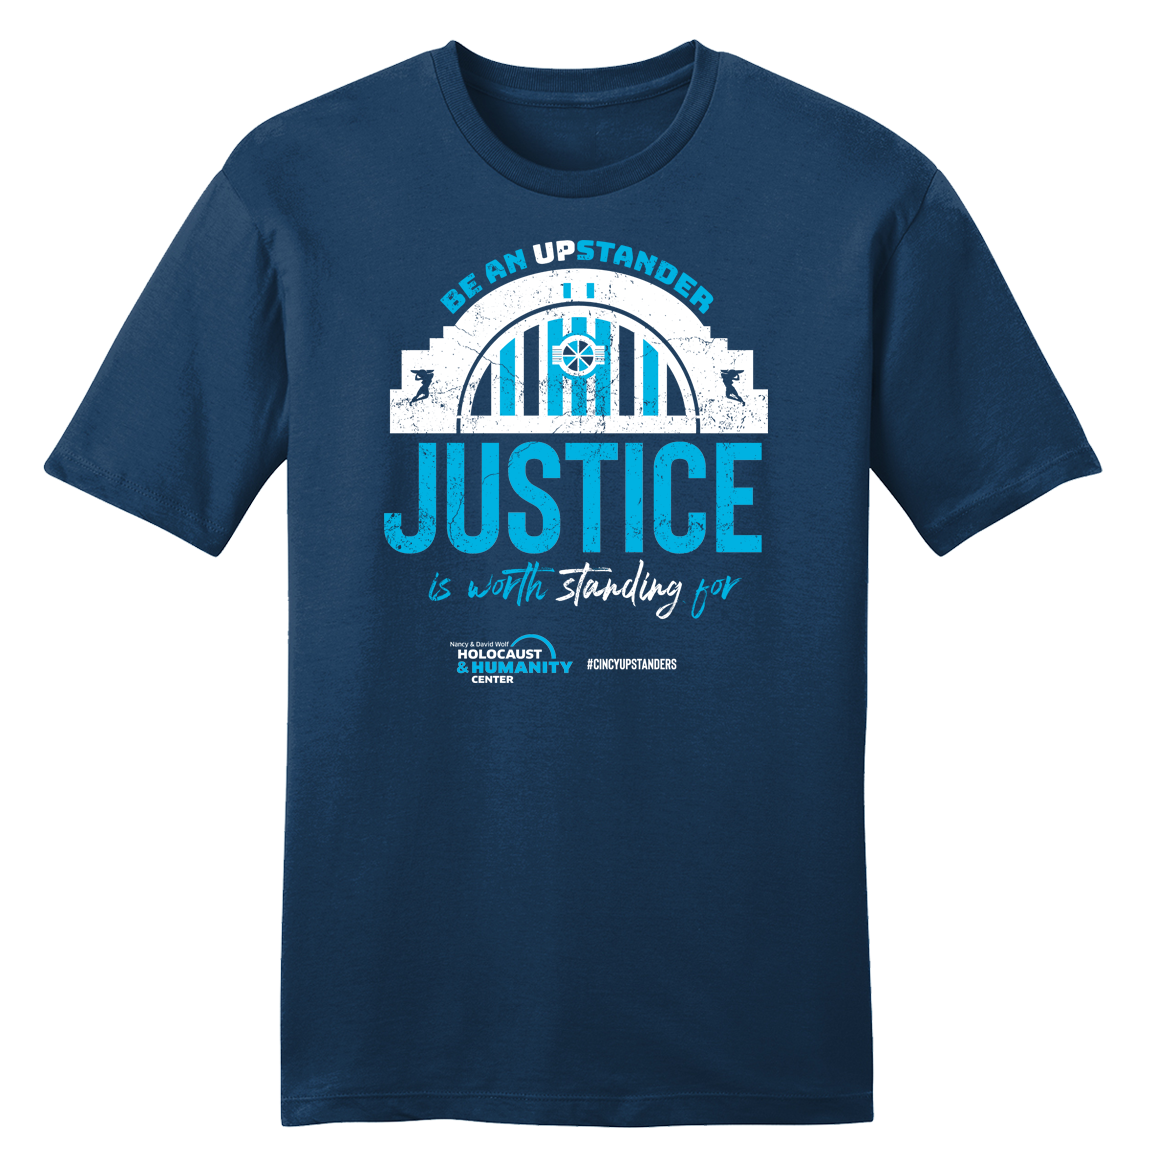 Justice #CincyUpstanders T-shirt